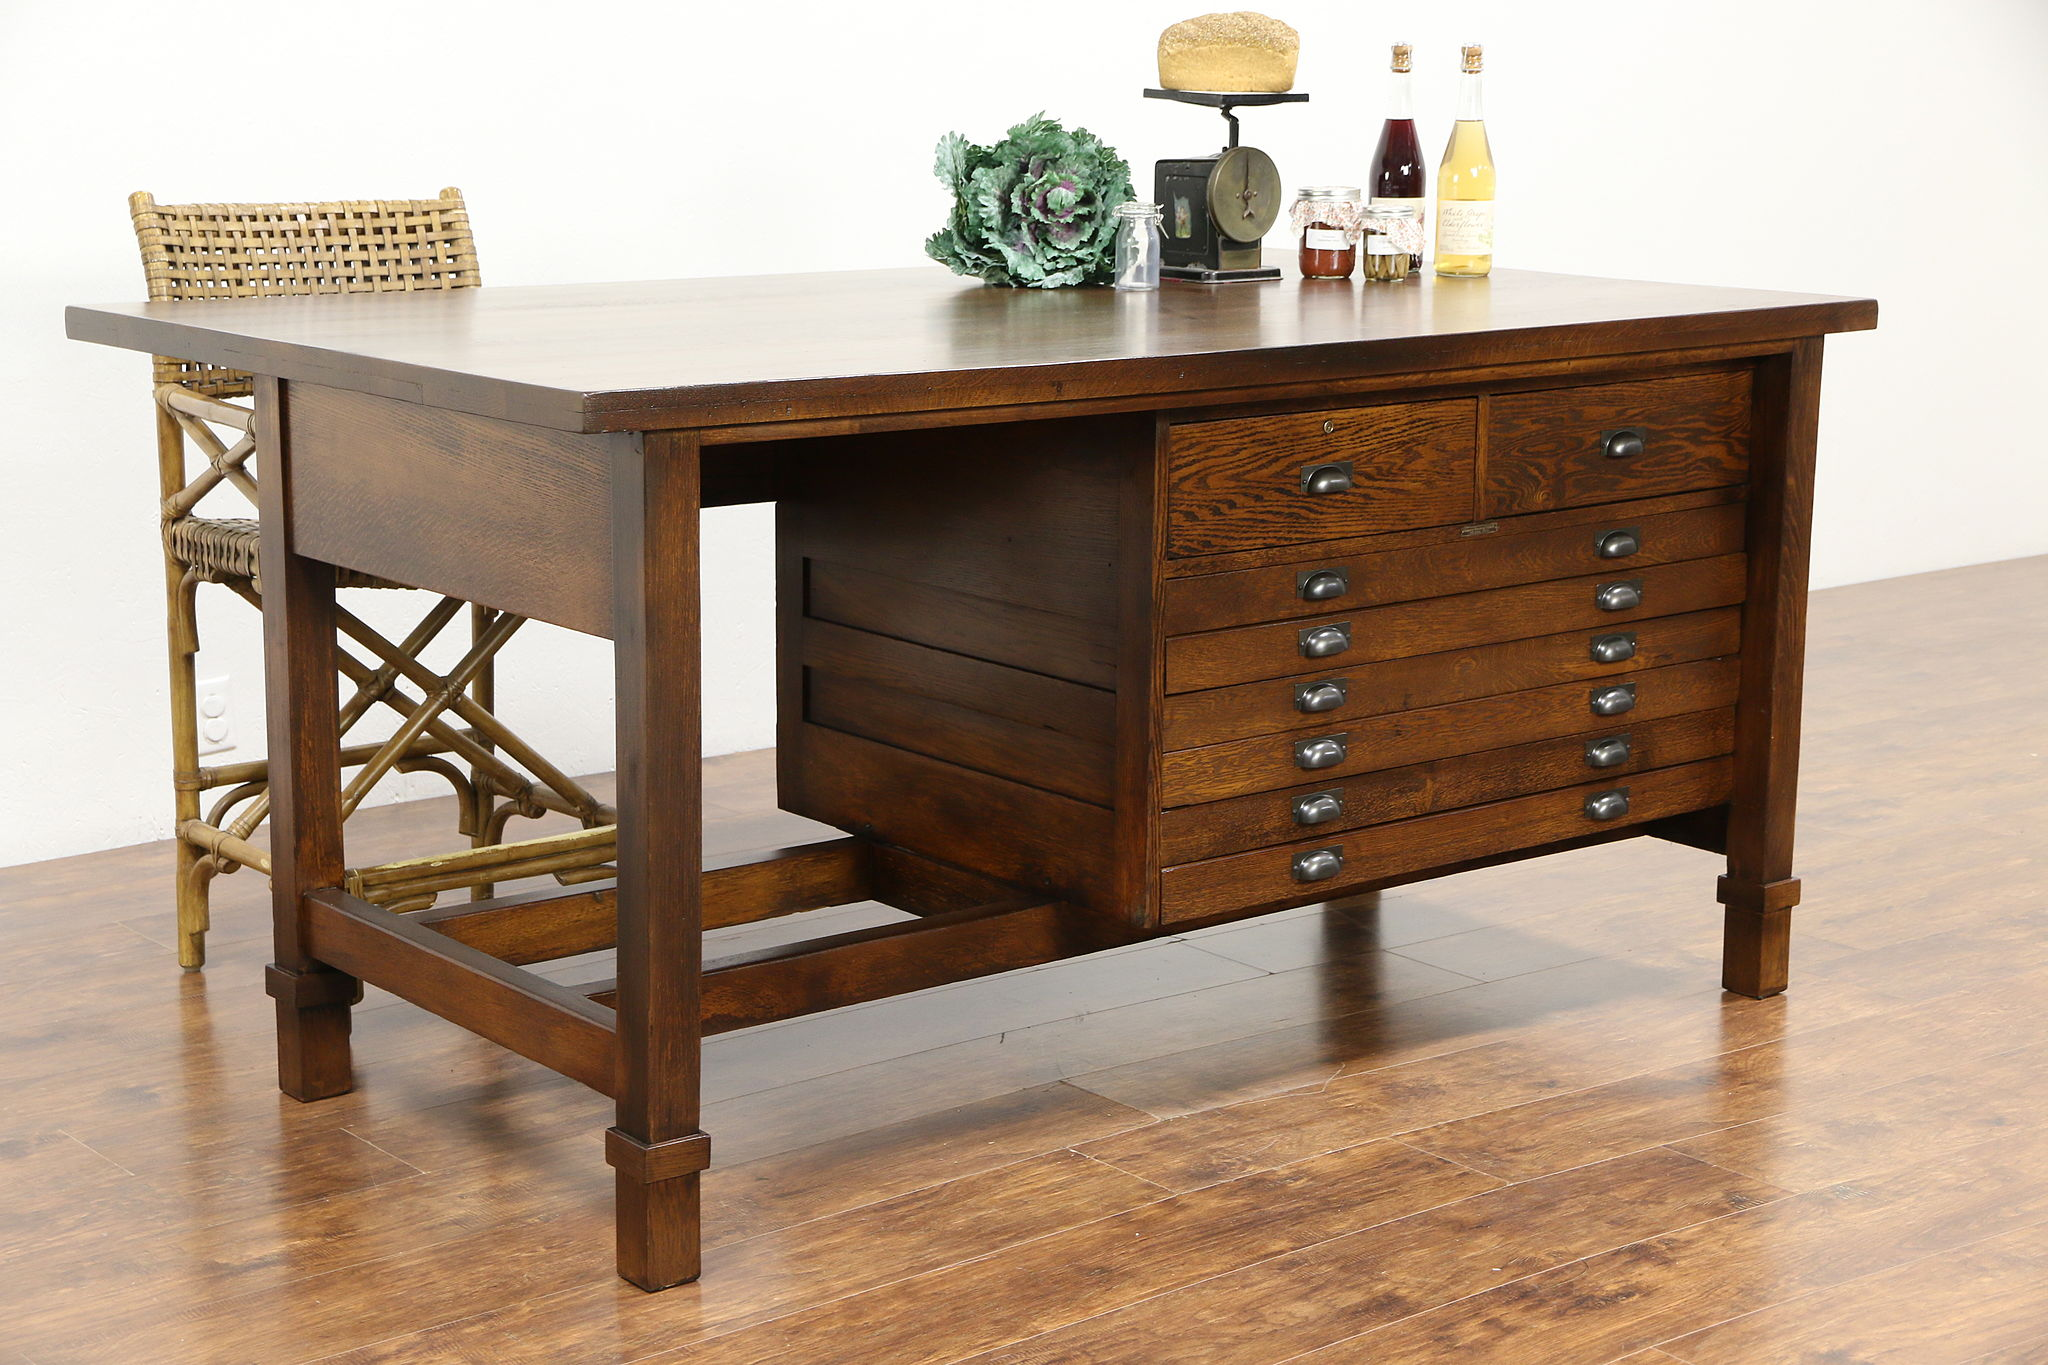 Groovy Oak 1920 Antique Architect Drafting Table Kitchen Counter Island Download Free Architecture Designs Scobabritishbridgeorg